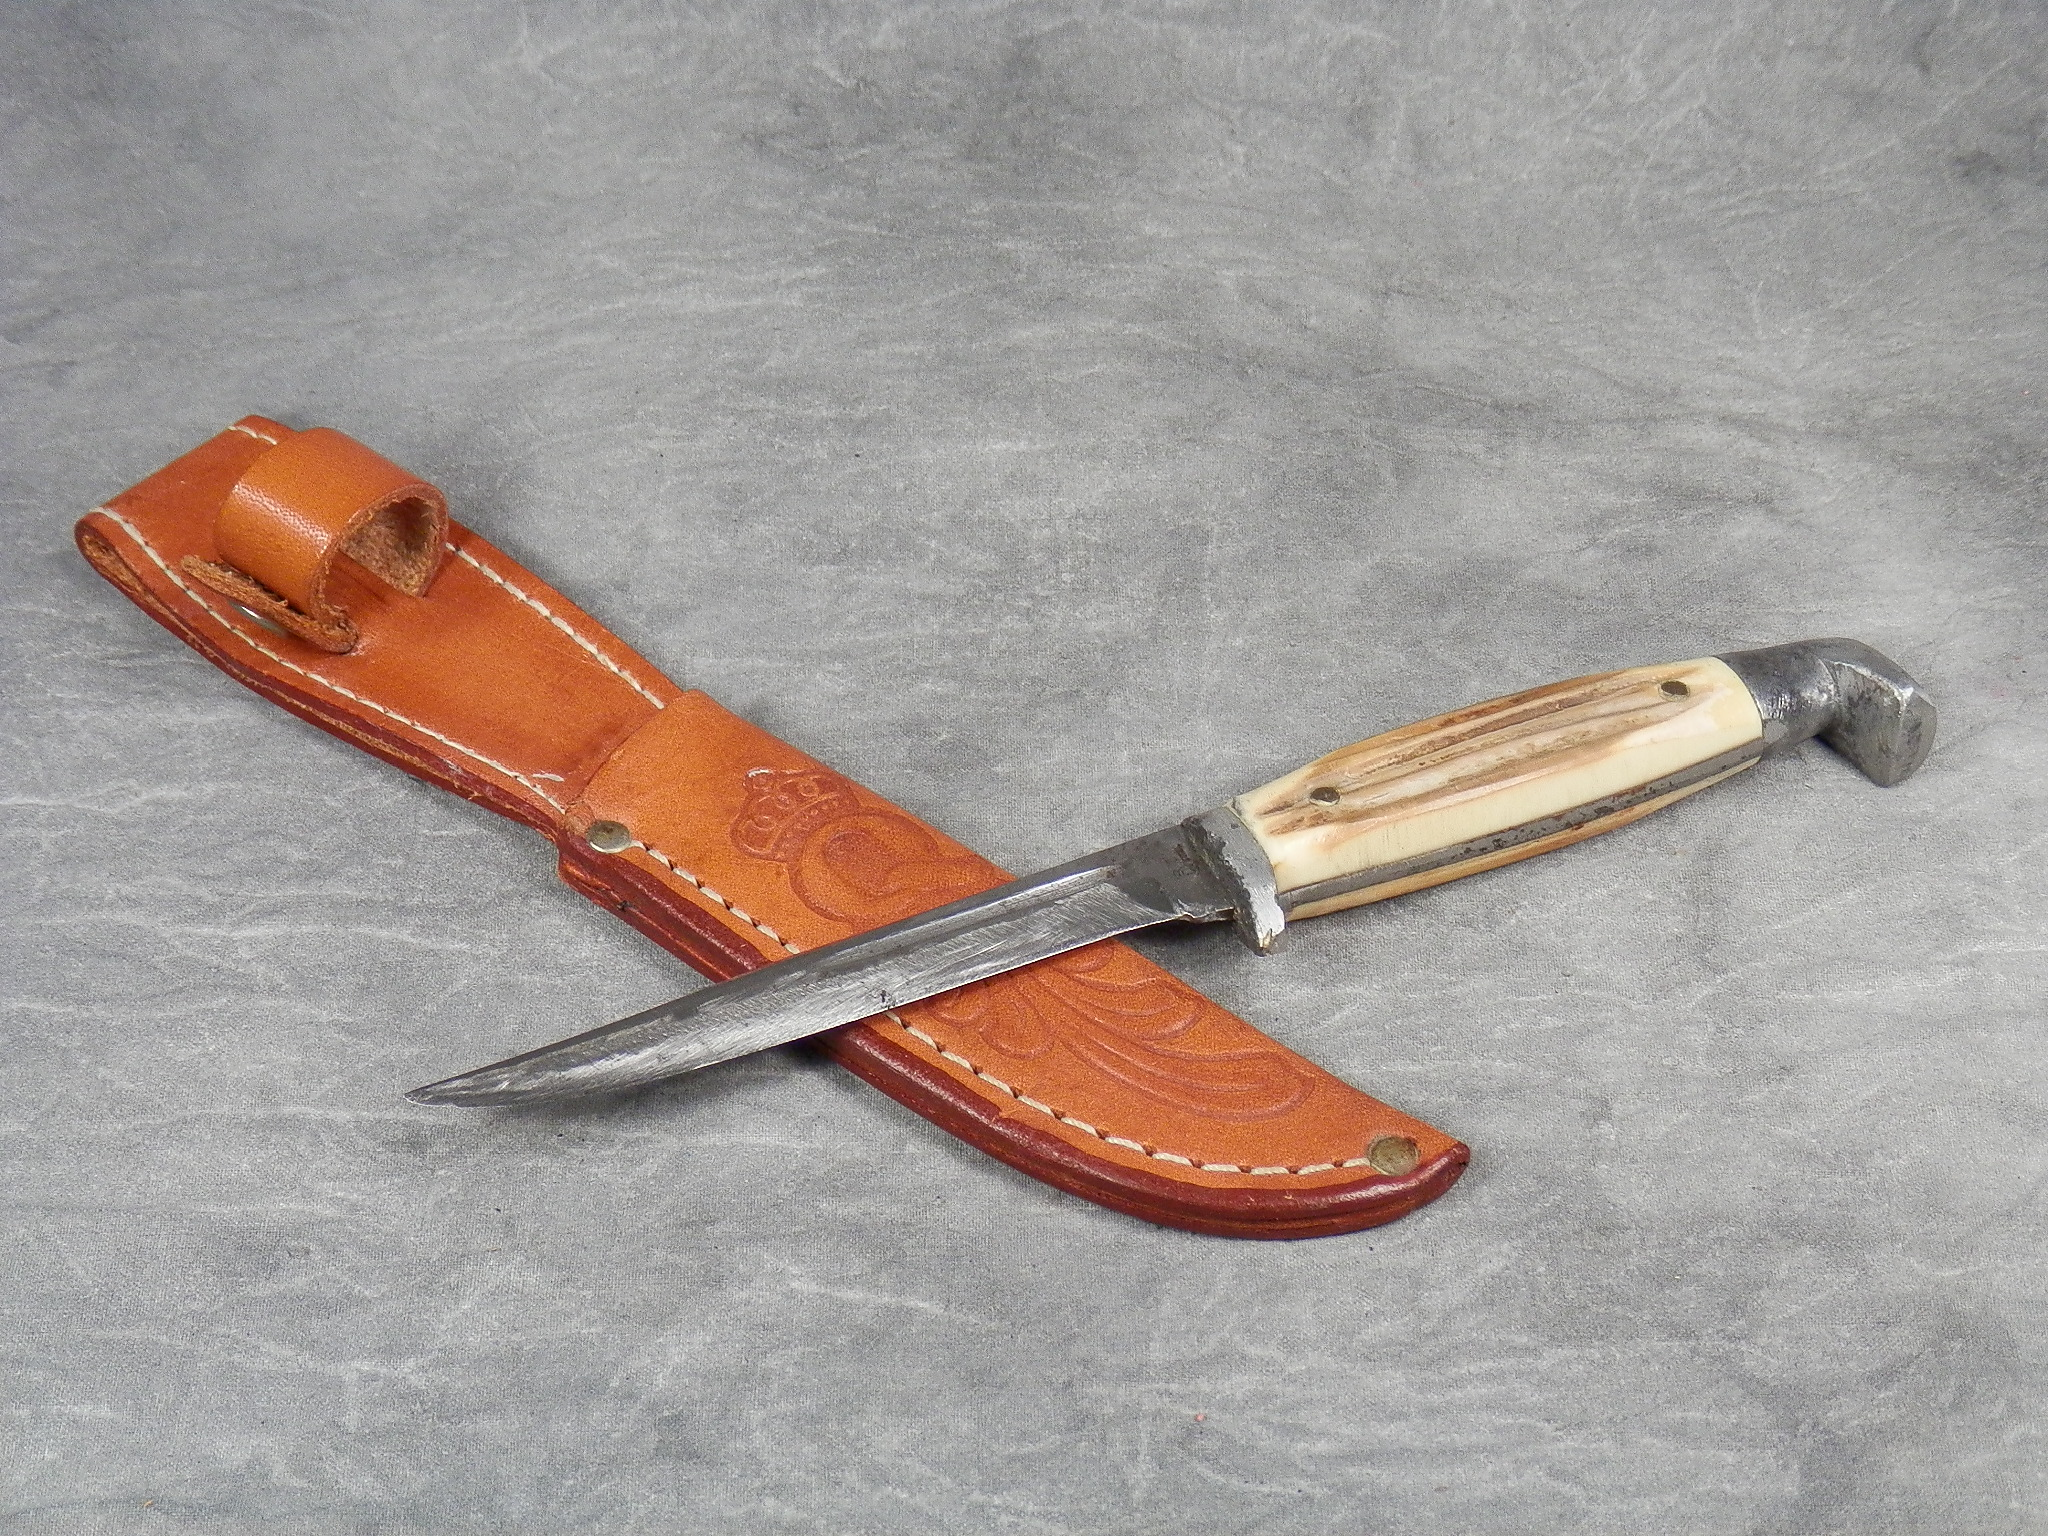 Queen Cutlery Knives for Sale